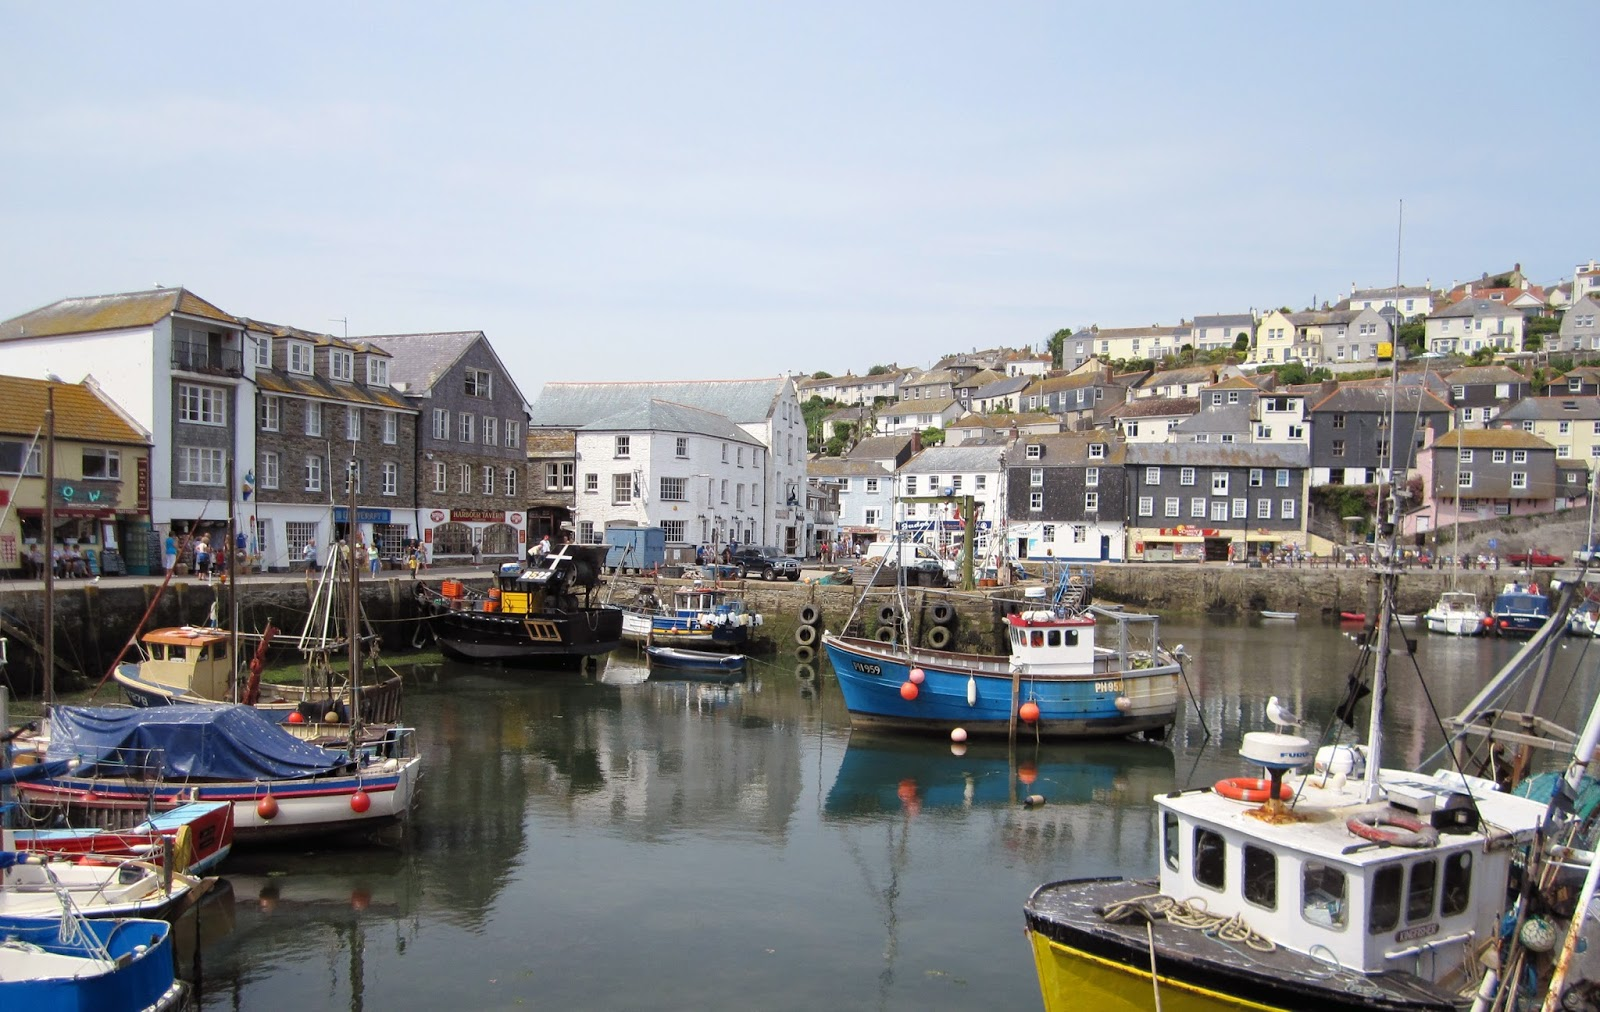 Cycle routes to Mevagissey, historic fishing village